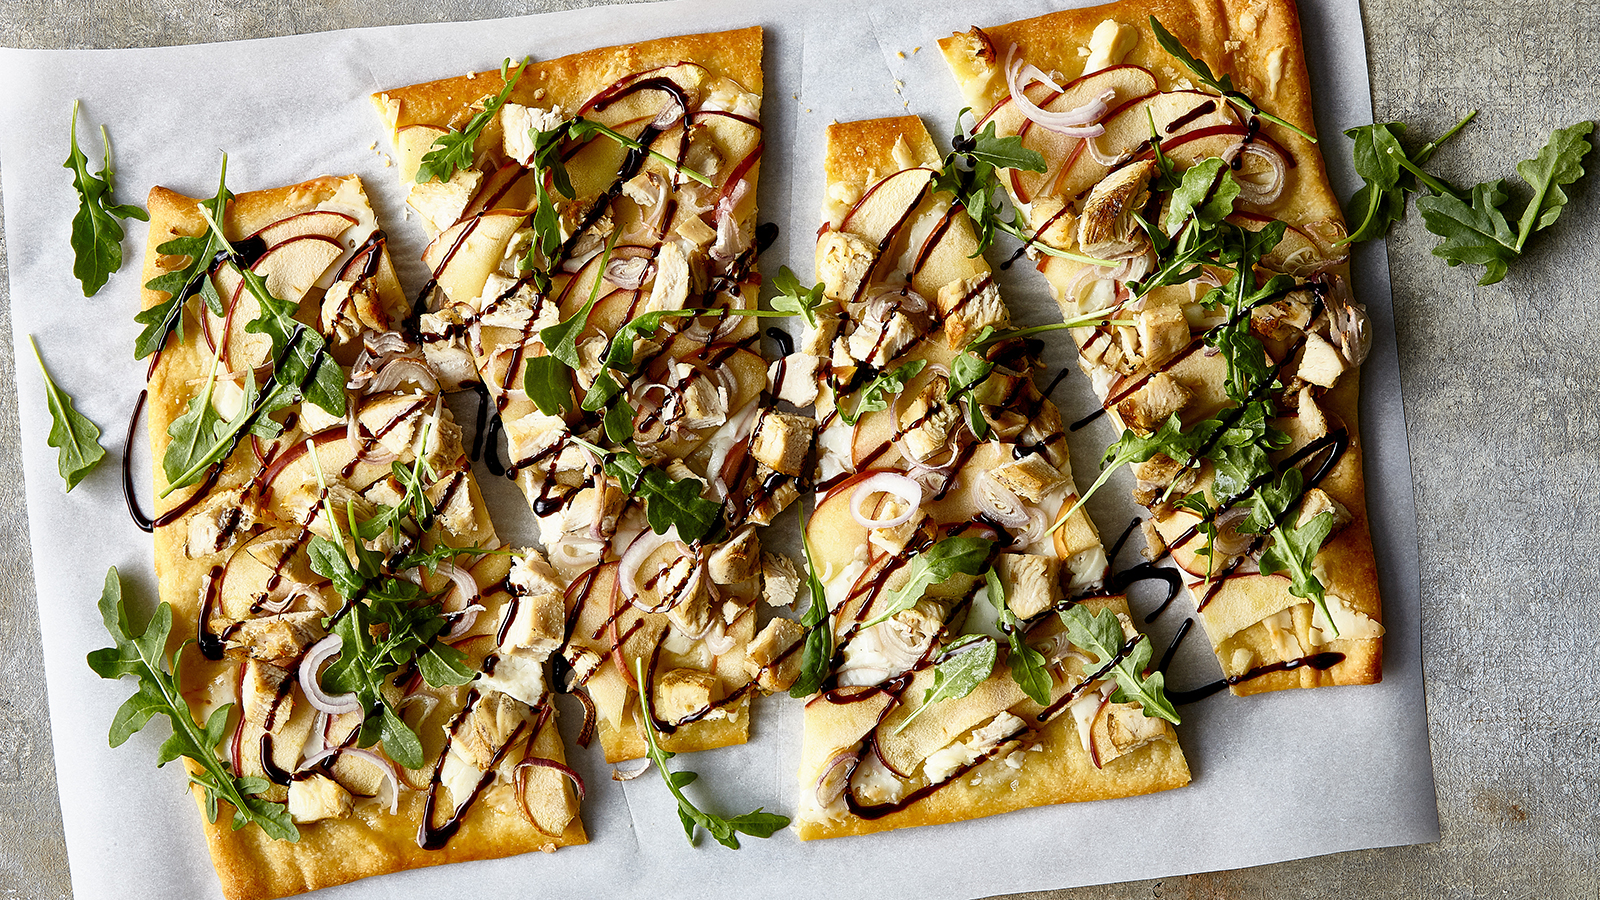 Crisp Apple, Spanish Goat Cheese and Grilled Chicken Flatbread